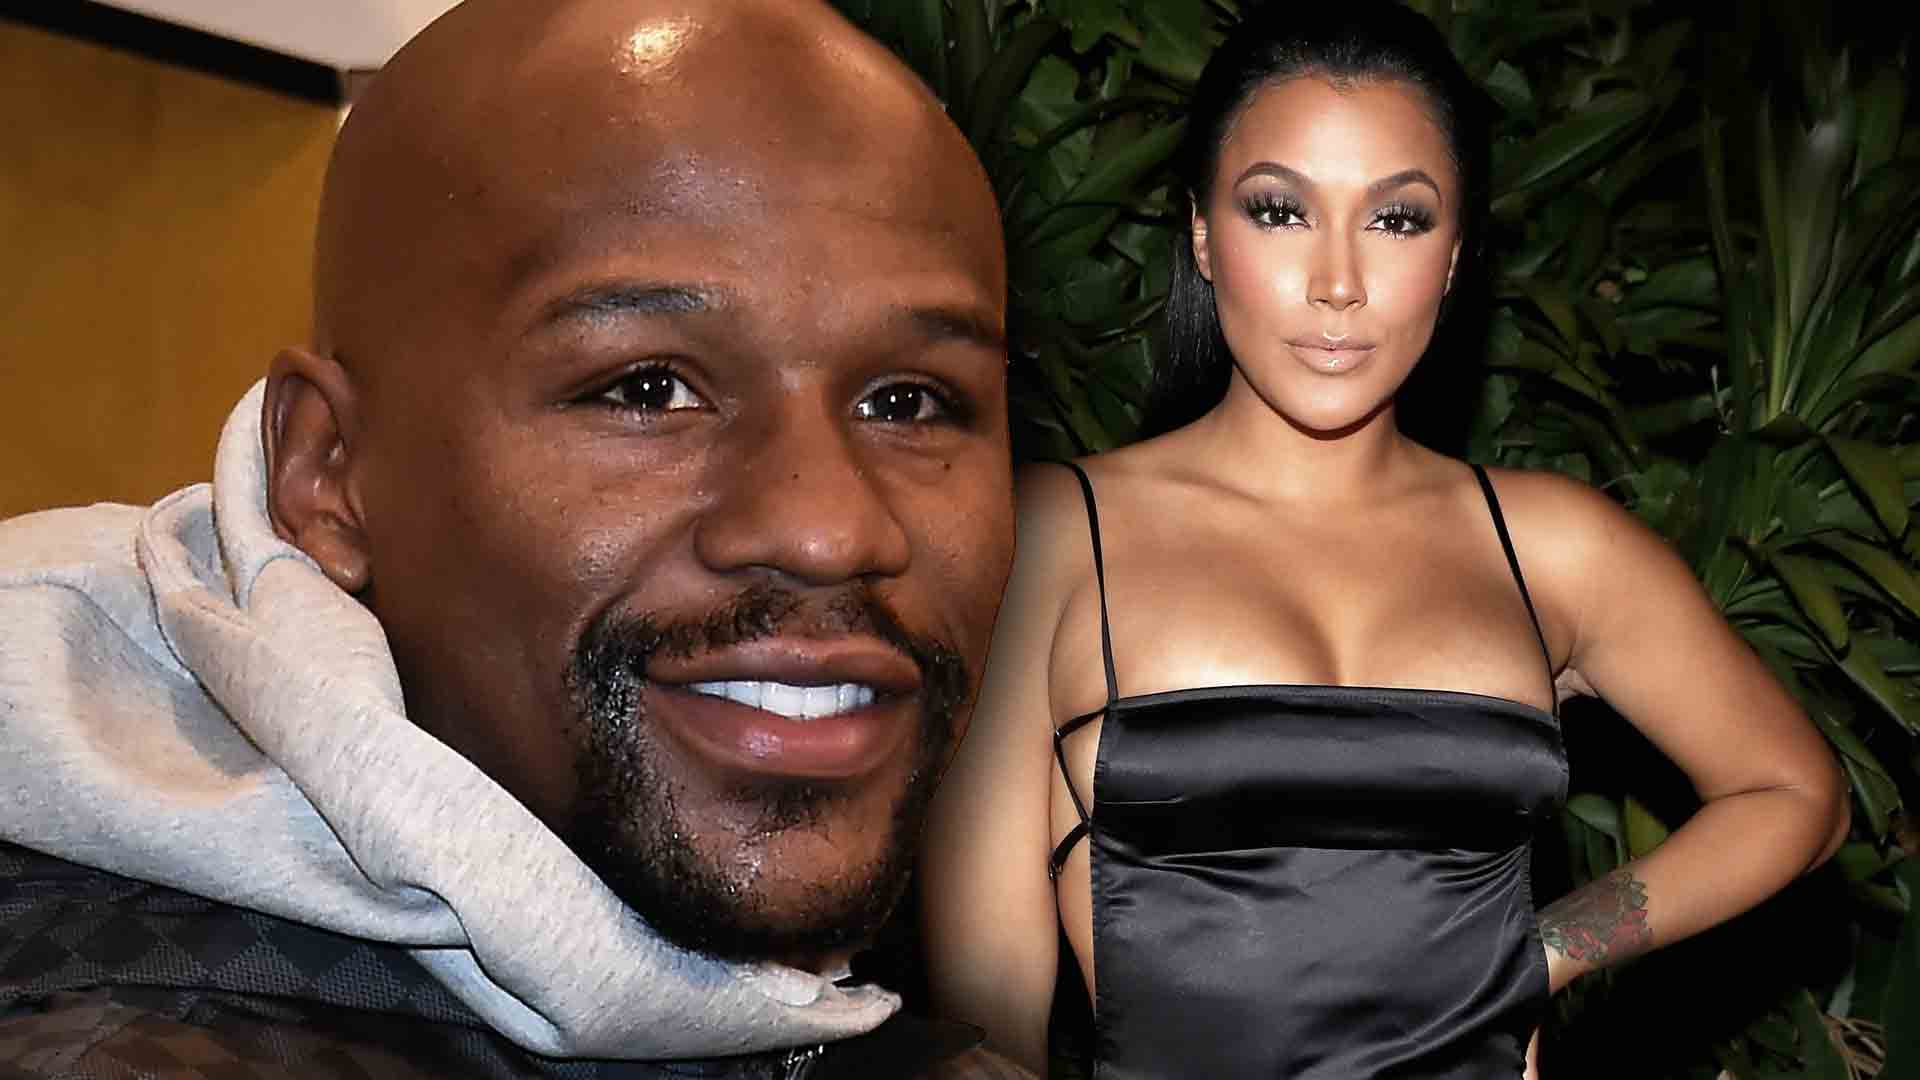 Floyd Mayweather's Ex Accuses Him Of Theft - She Claims He Stole $3 Million In Jewelry